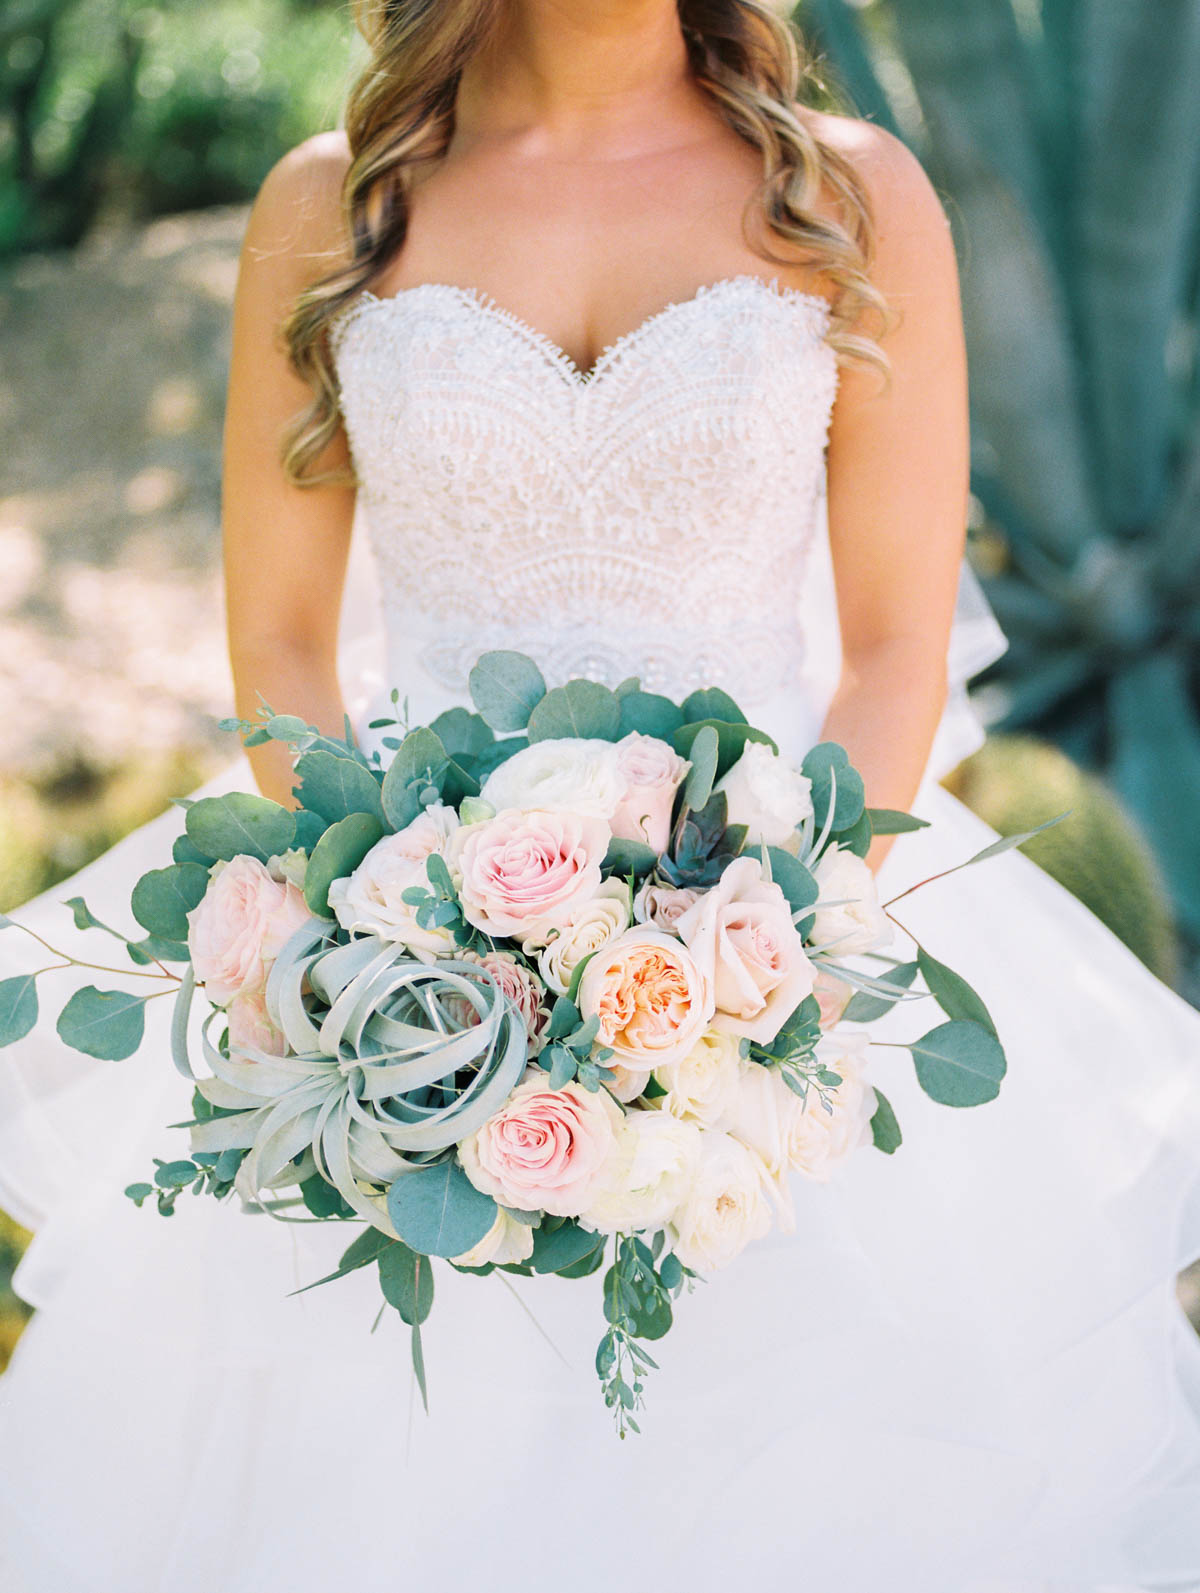 Another shot of this incredible bouquet by Alexis Grace florals. Isn't she amazing?captured by Tucson Wedding Photographers Betsy & John